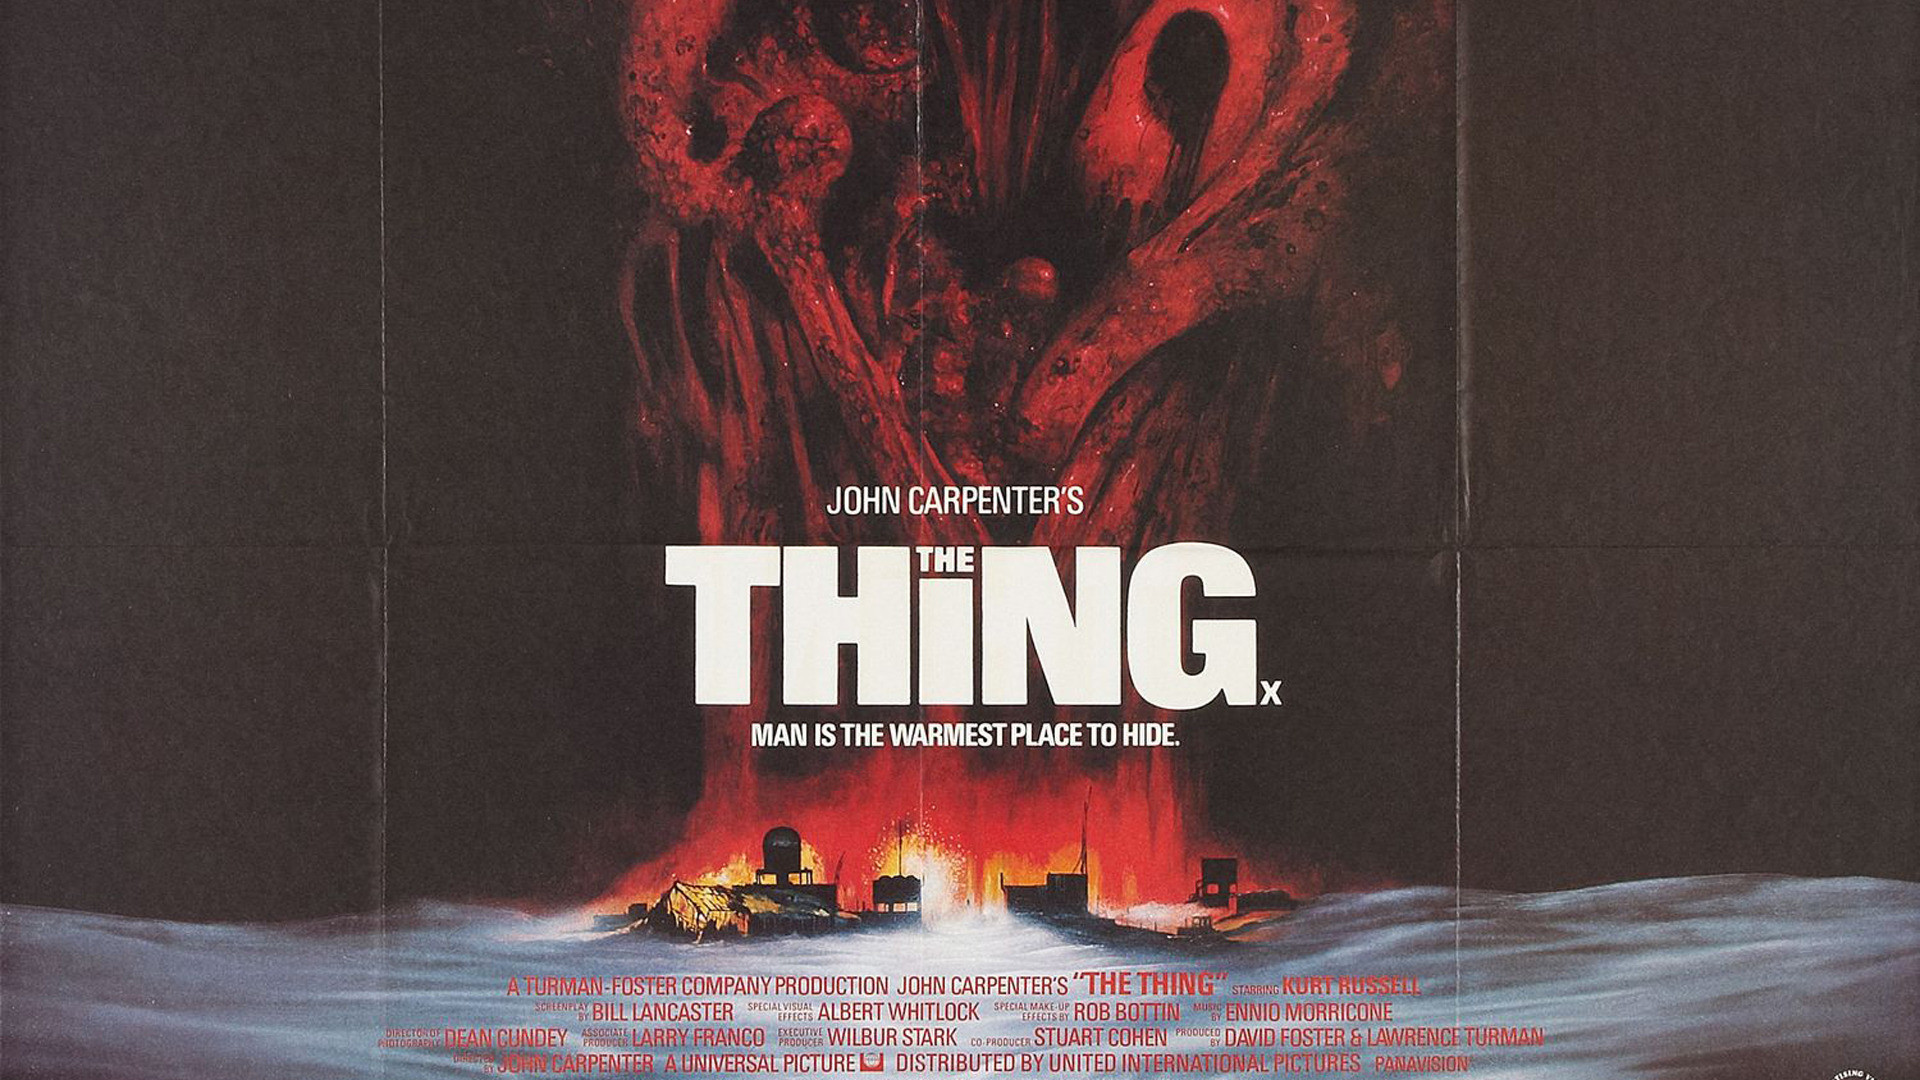 1920x1080 John Carpenter The Thing Movie #poster 1982 Horror film with nod to H.P.  Lovecraft's Cthulhu